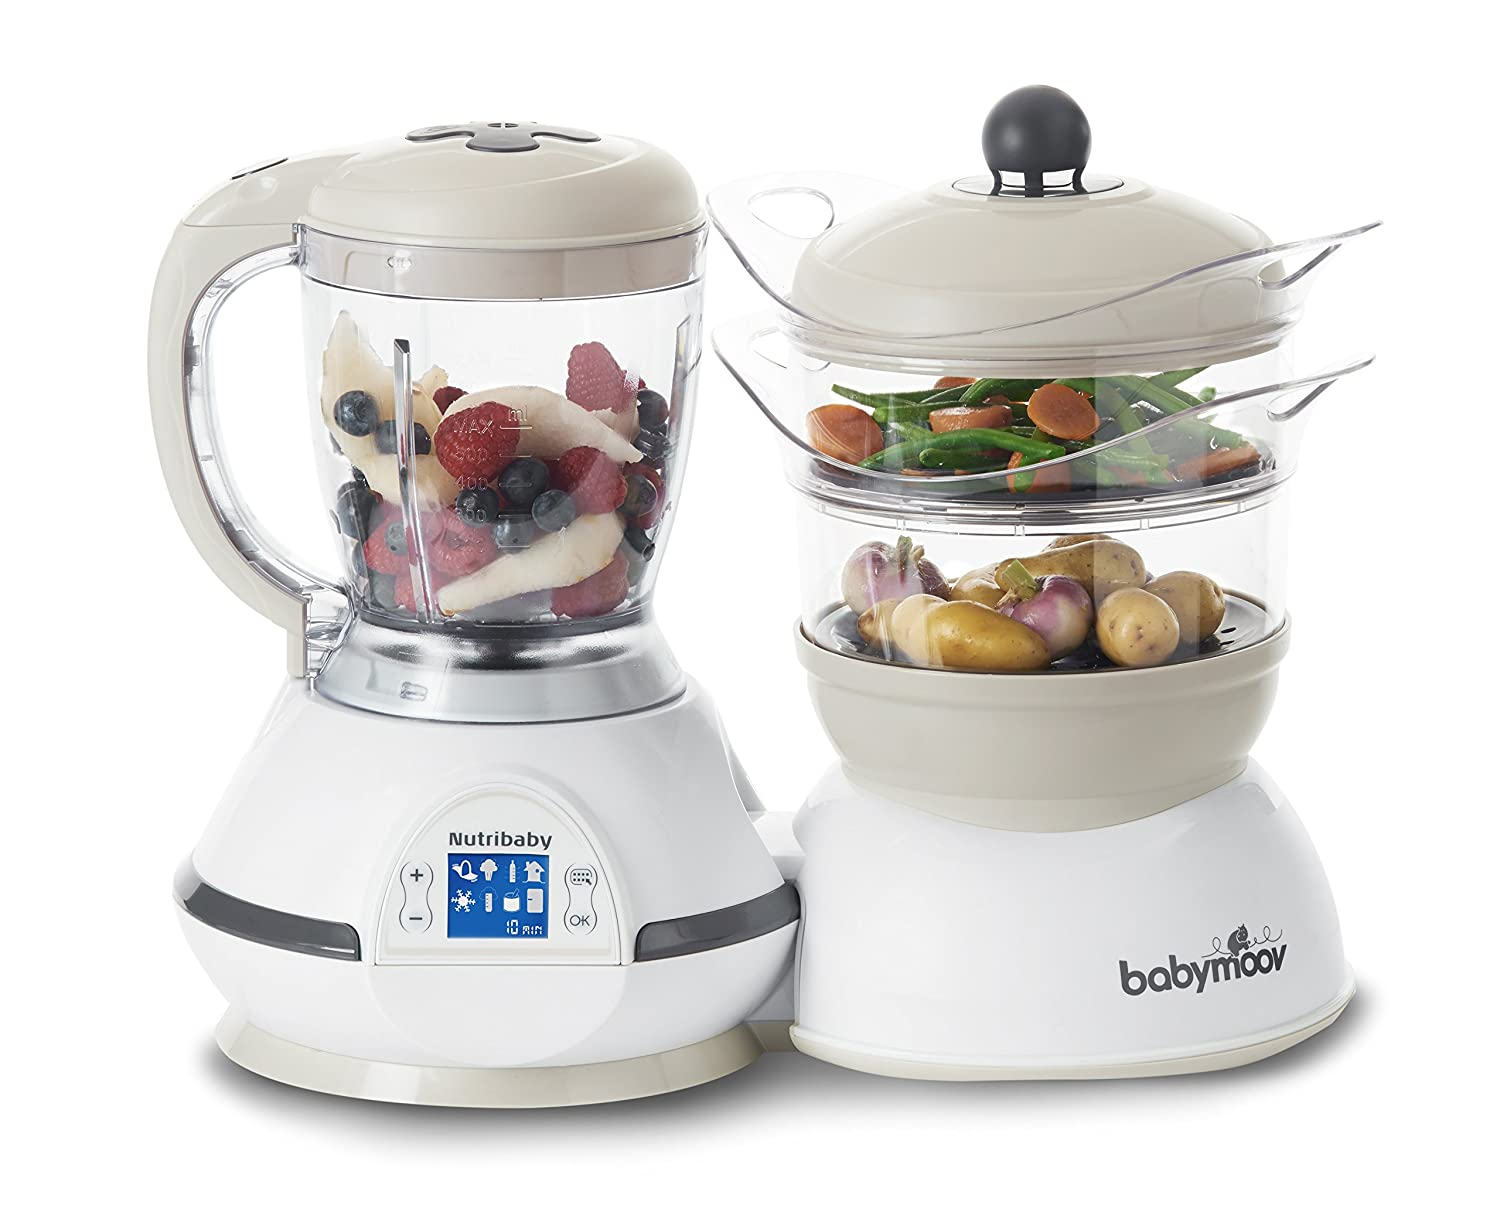 (was 9.99) Babymoov Nutribaby - 5 in 1 Baby Food Maker with Steam Cooker, Blend & Puree, Warmer, Defroster, Sterilizer (Cream)